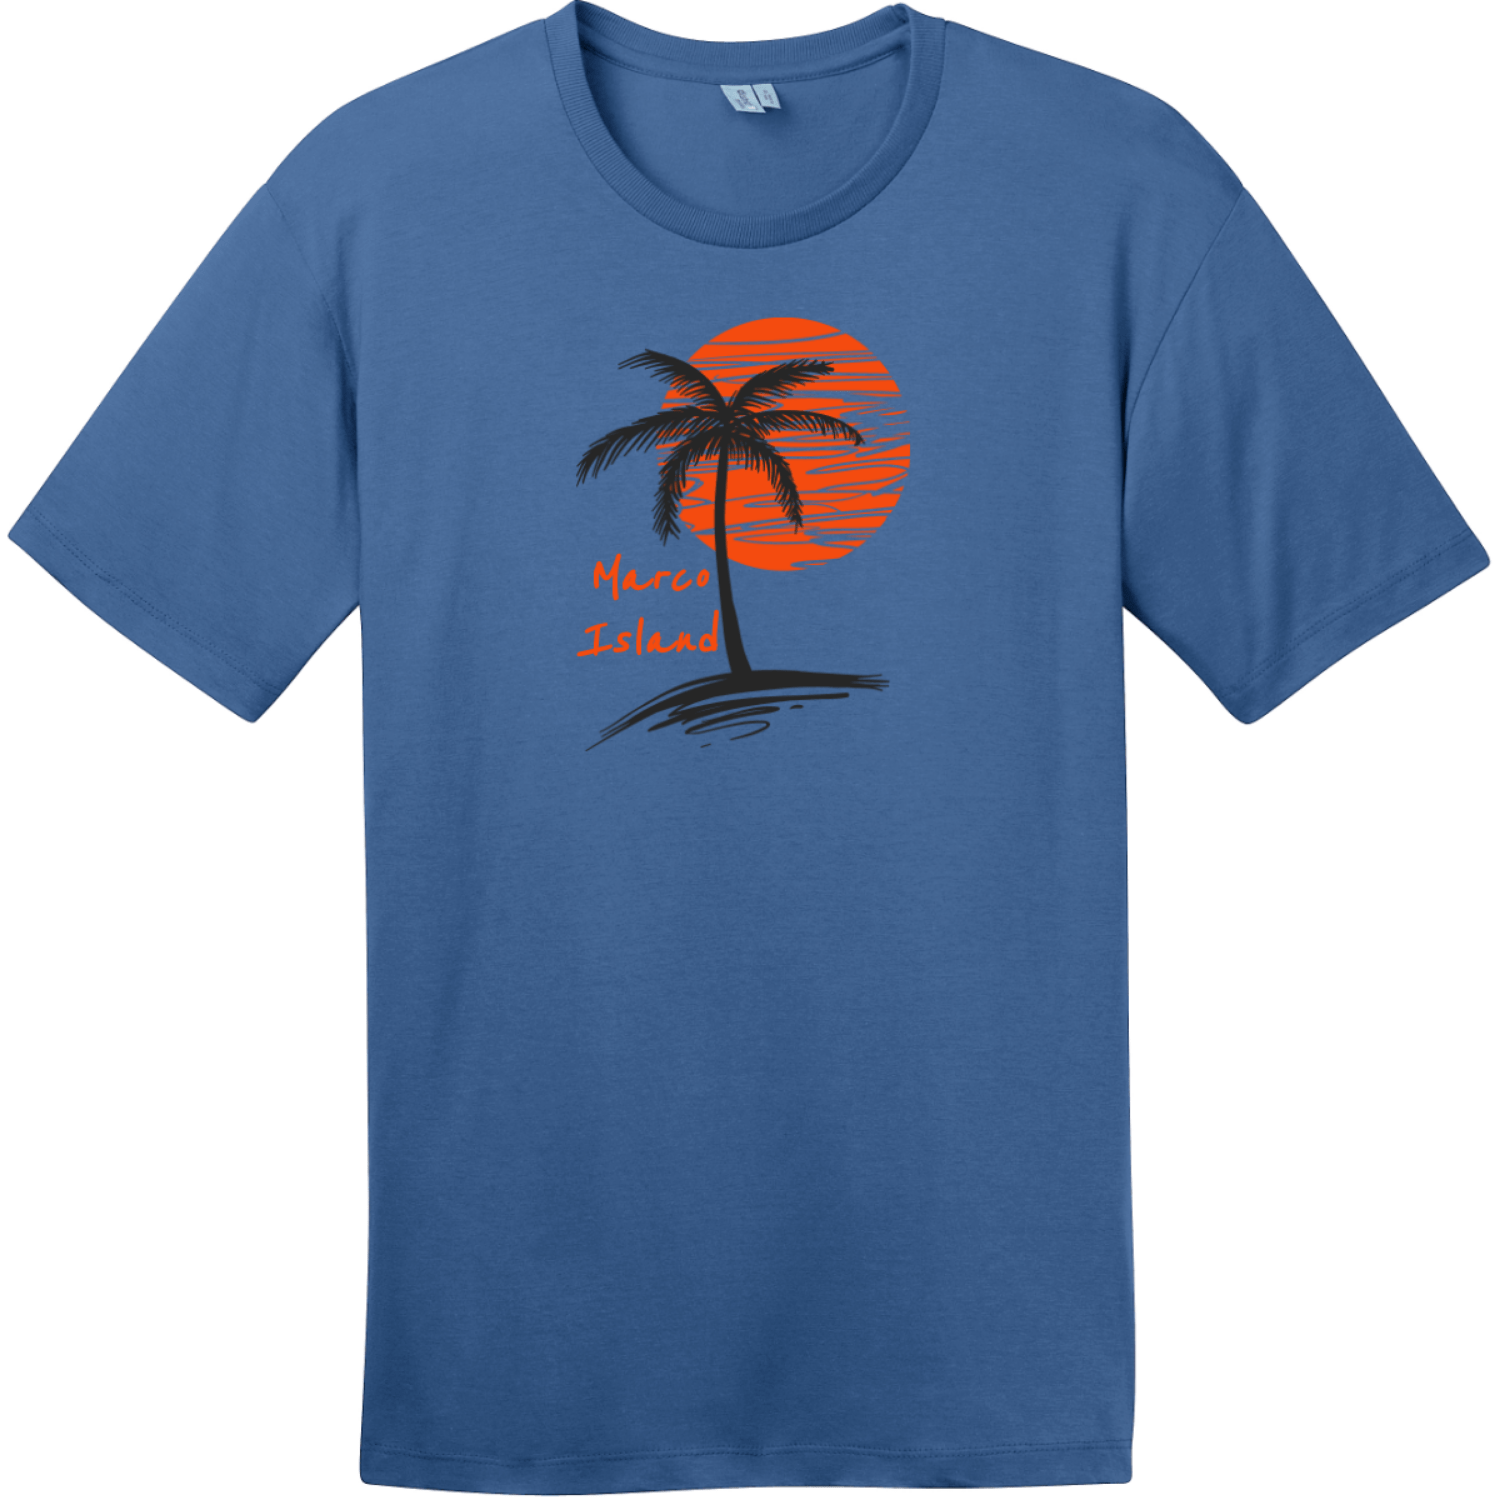 Marco Island Florida Palm Tree T-Shirt Maritime Blue District Perfect Weight Tee DT104